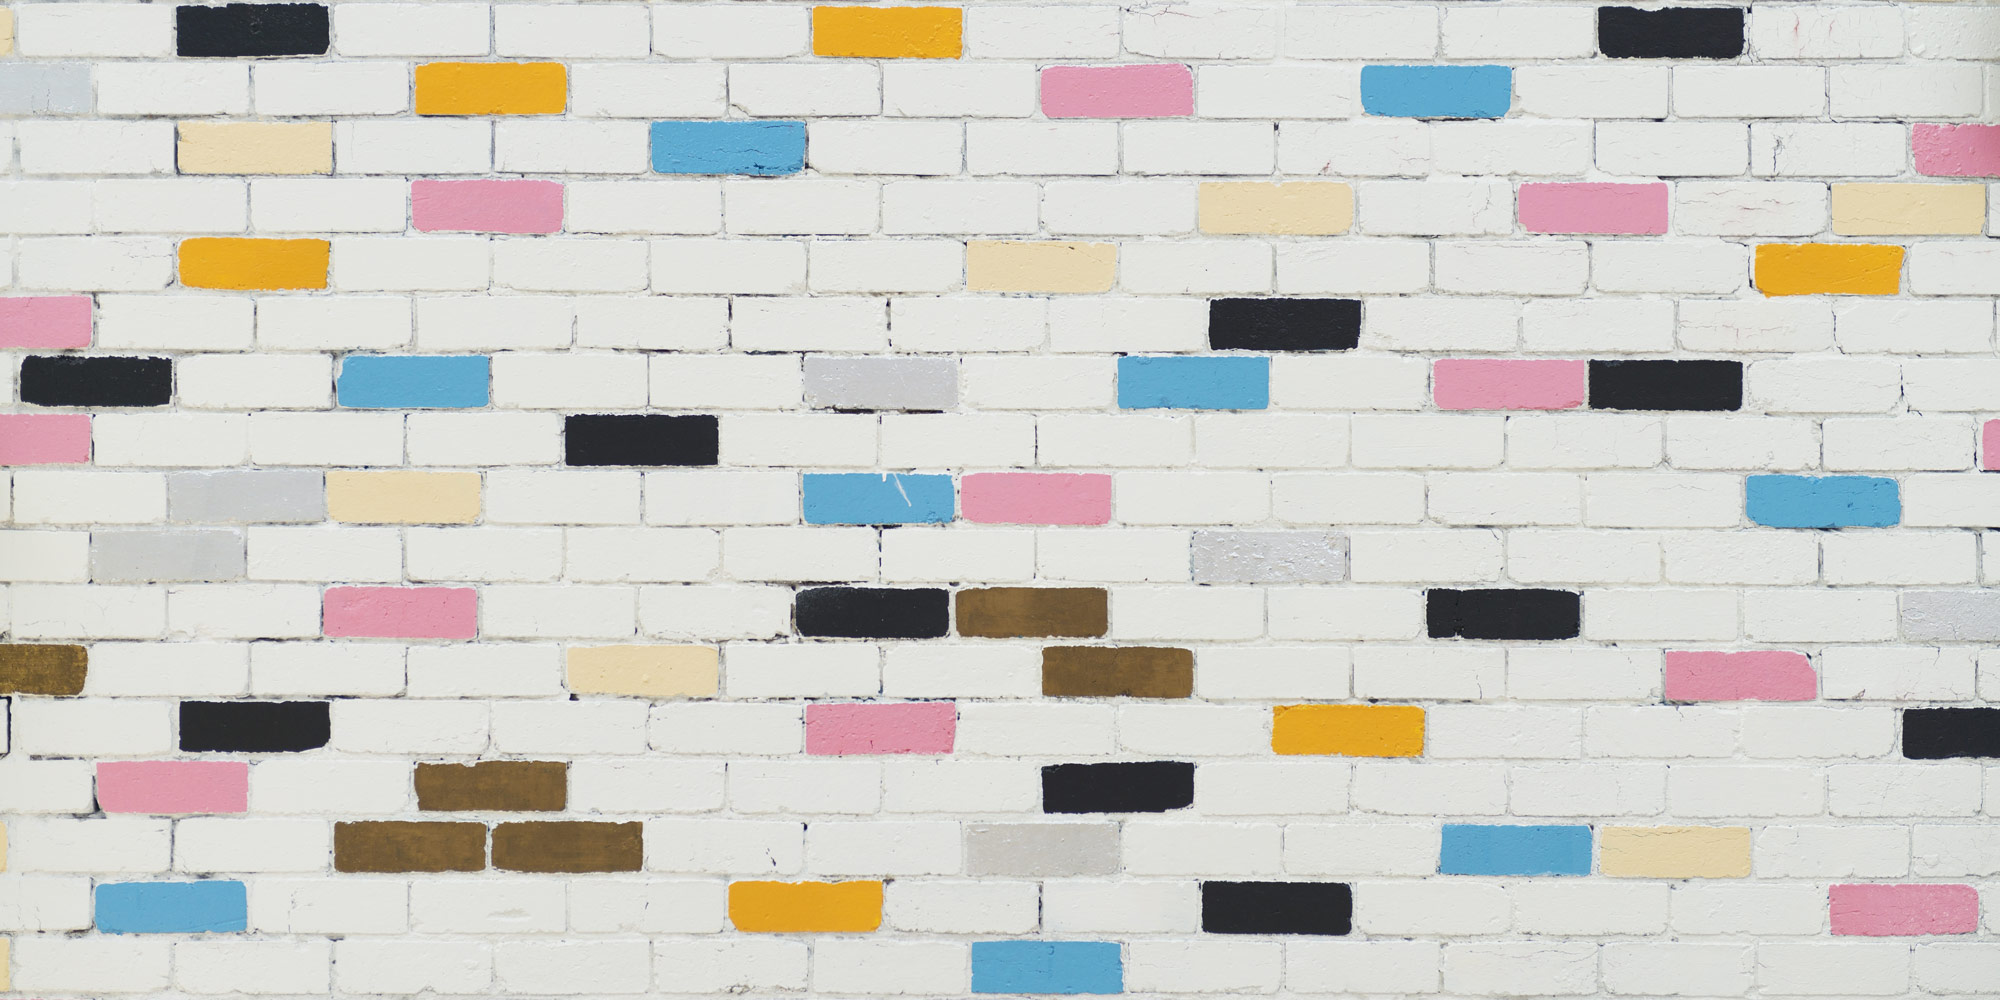 What to consider before you paint brick | Life Lanes